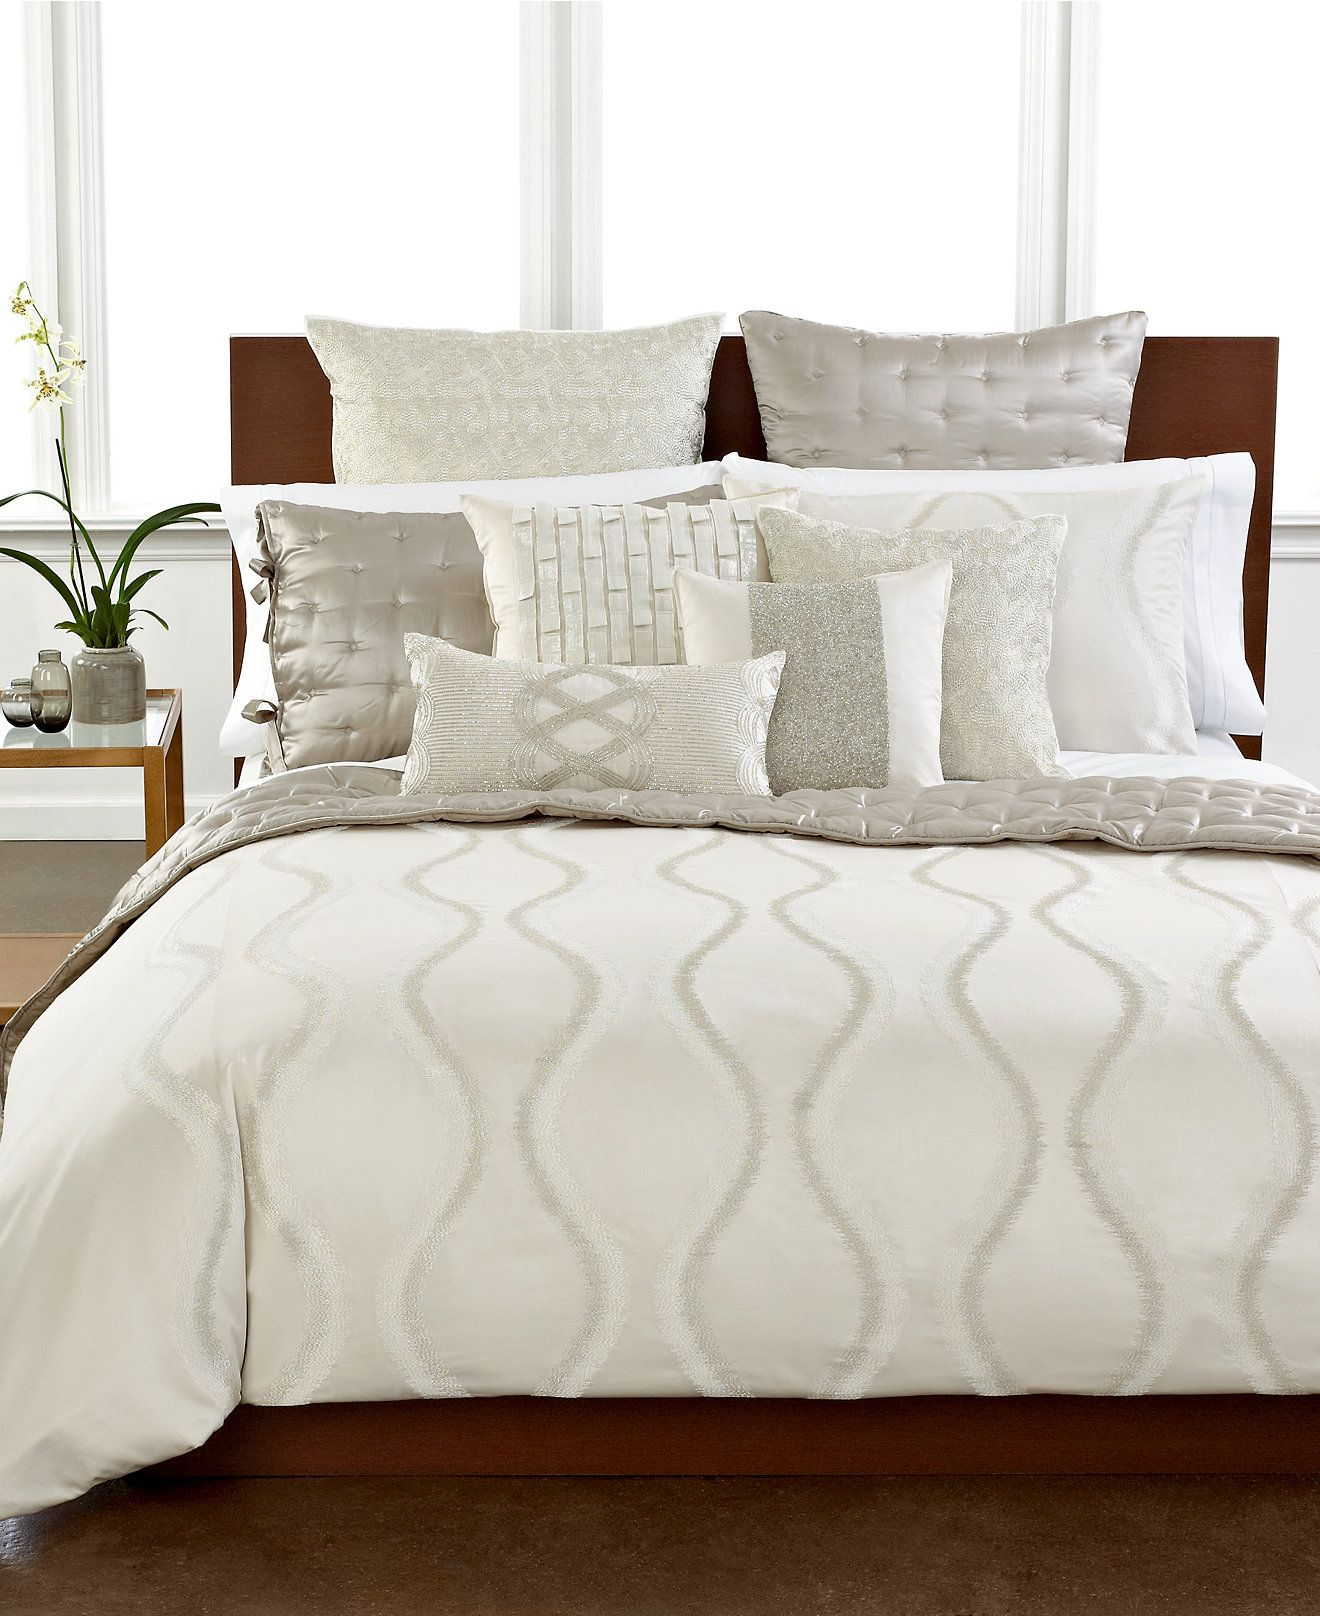 Closeout Hotel Collection Finest Luster Bedding Collection Created For Macy 39 S Bedding